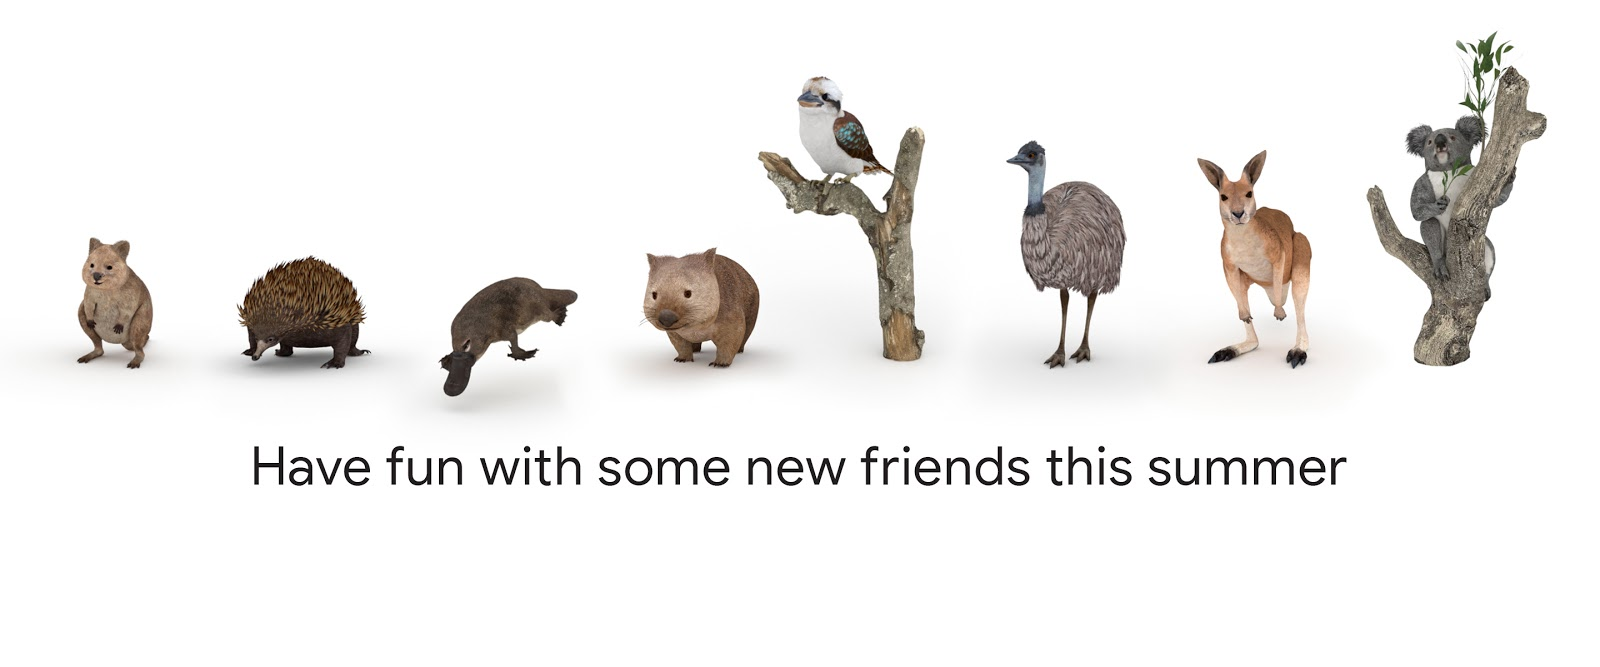 Google launches Aussie AR Animals with new film shot by influencers via Emotive